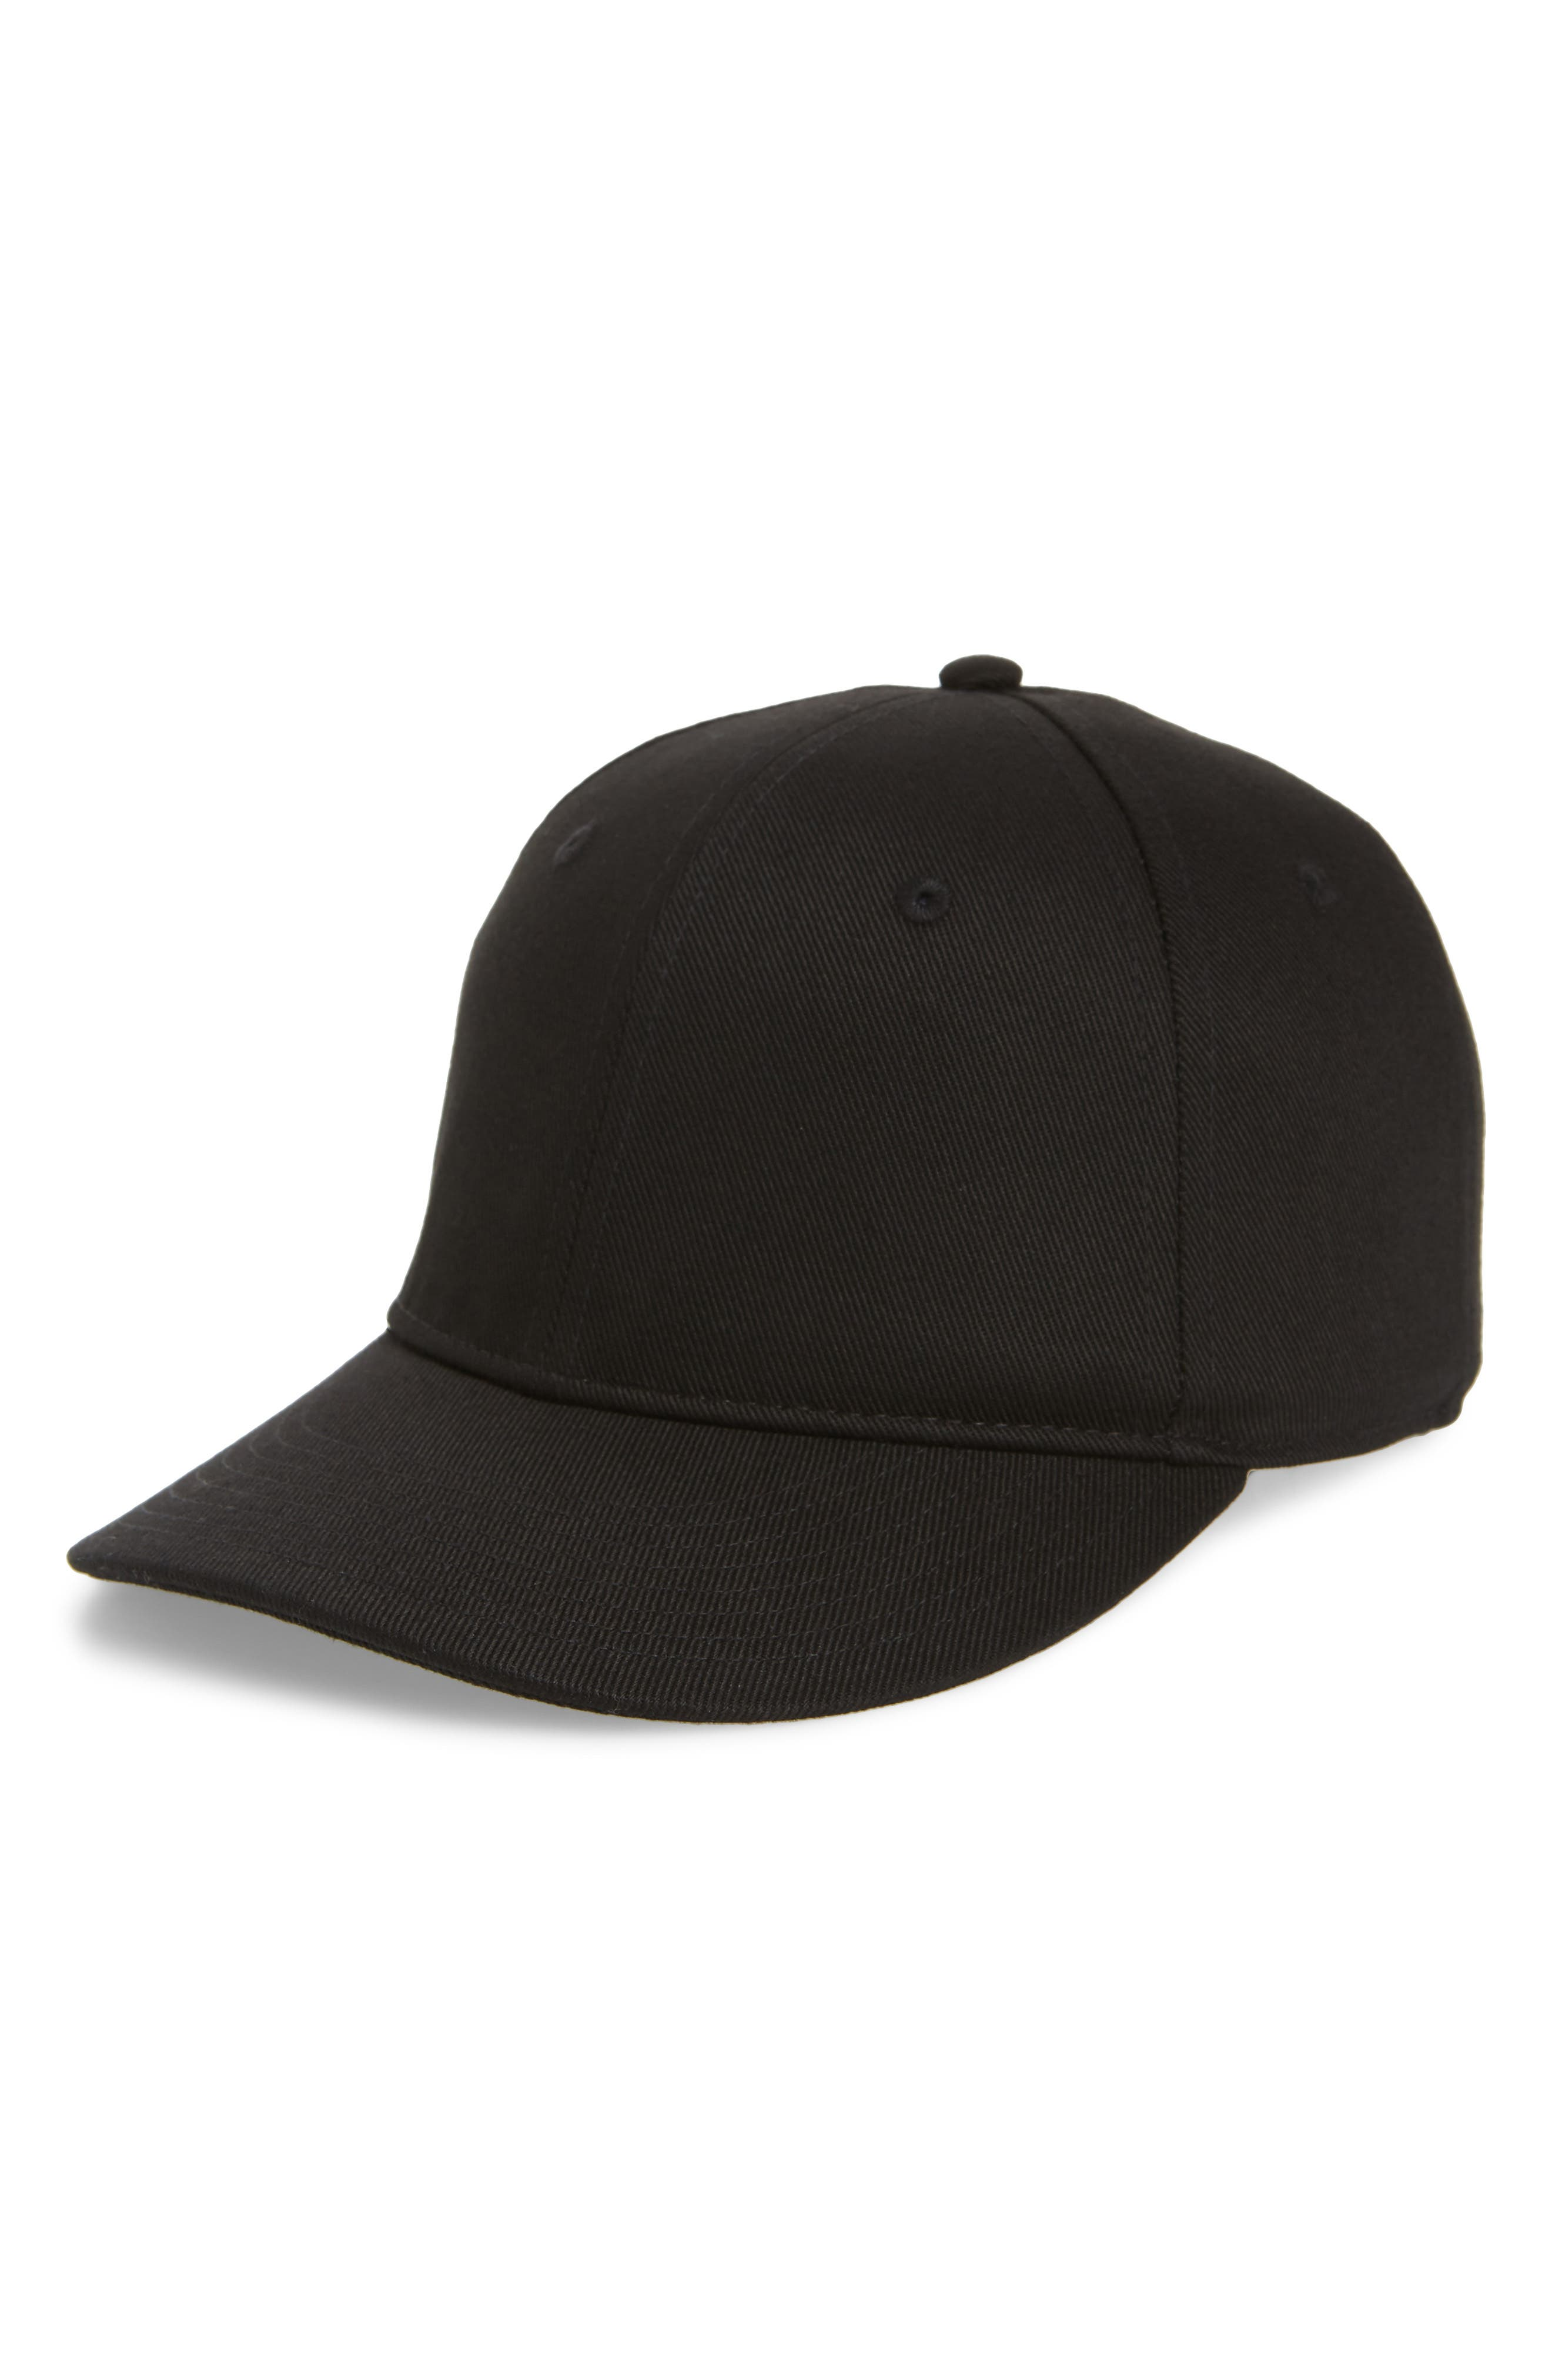 Dylan Ball Cap,                         Main,                         color, Black Twill